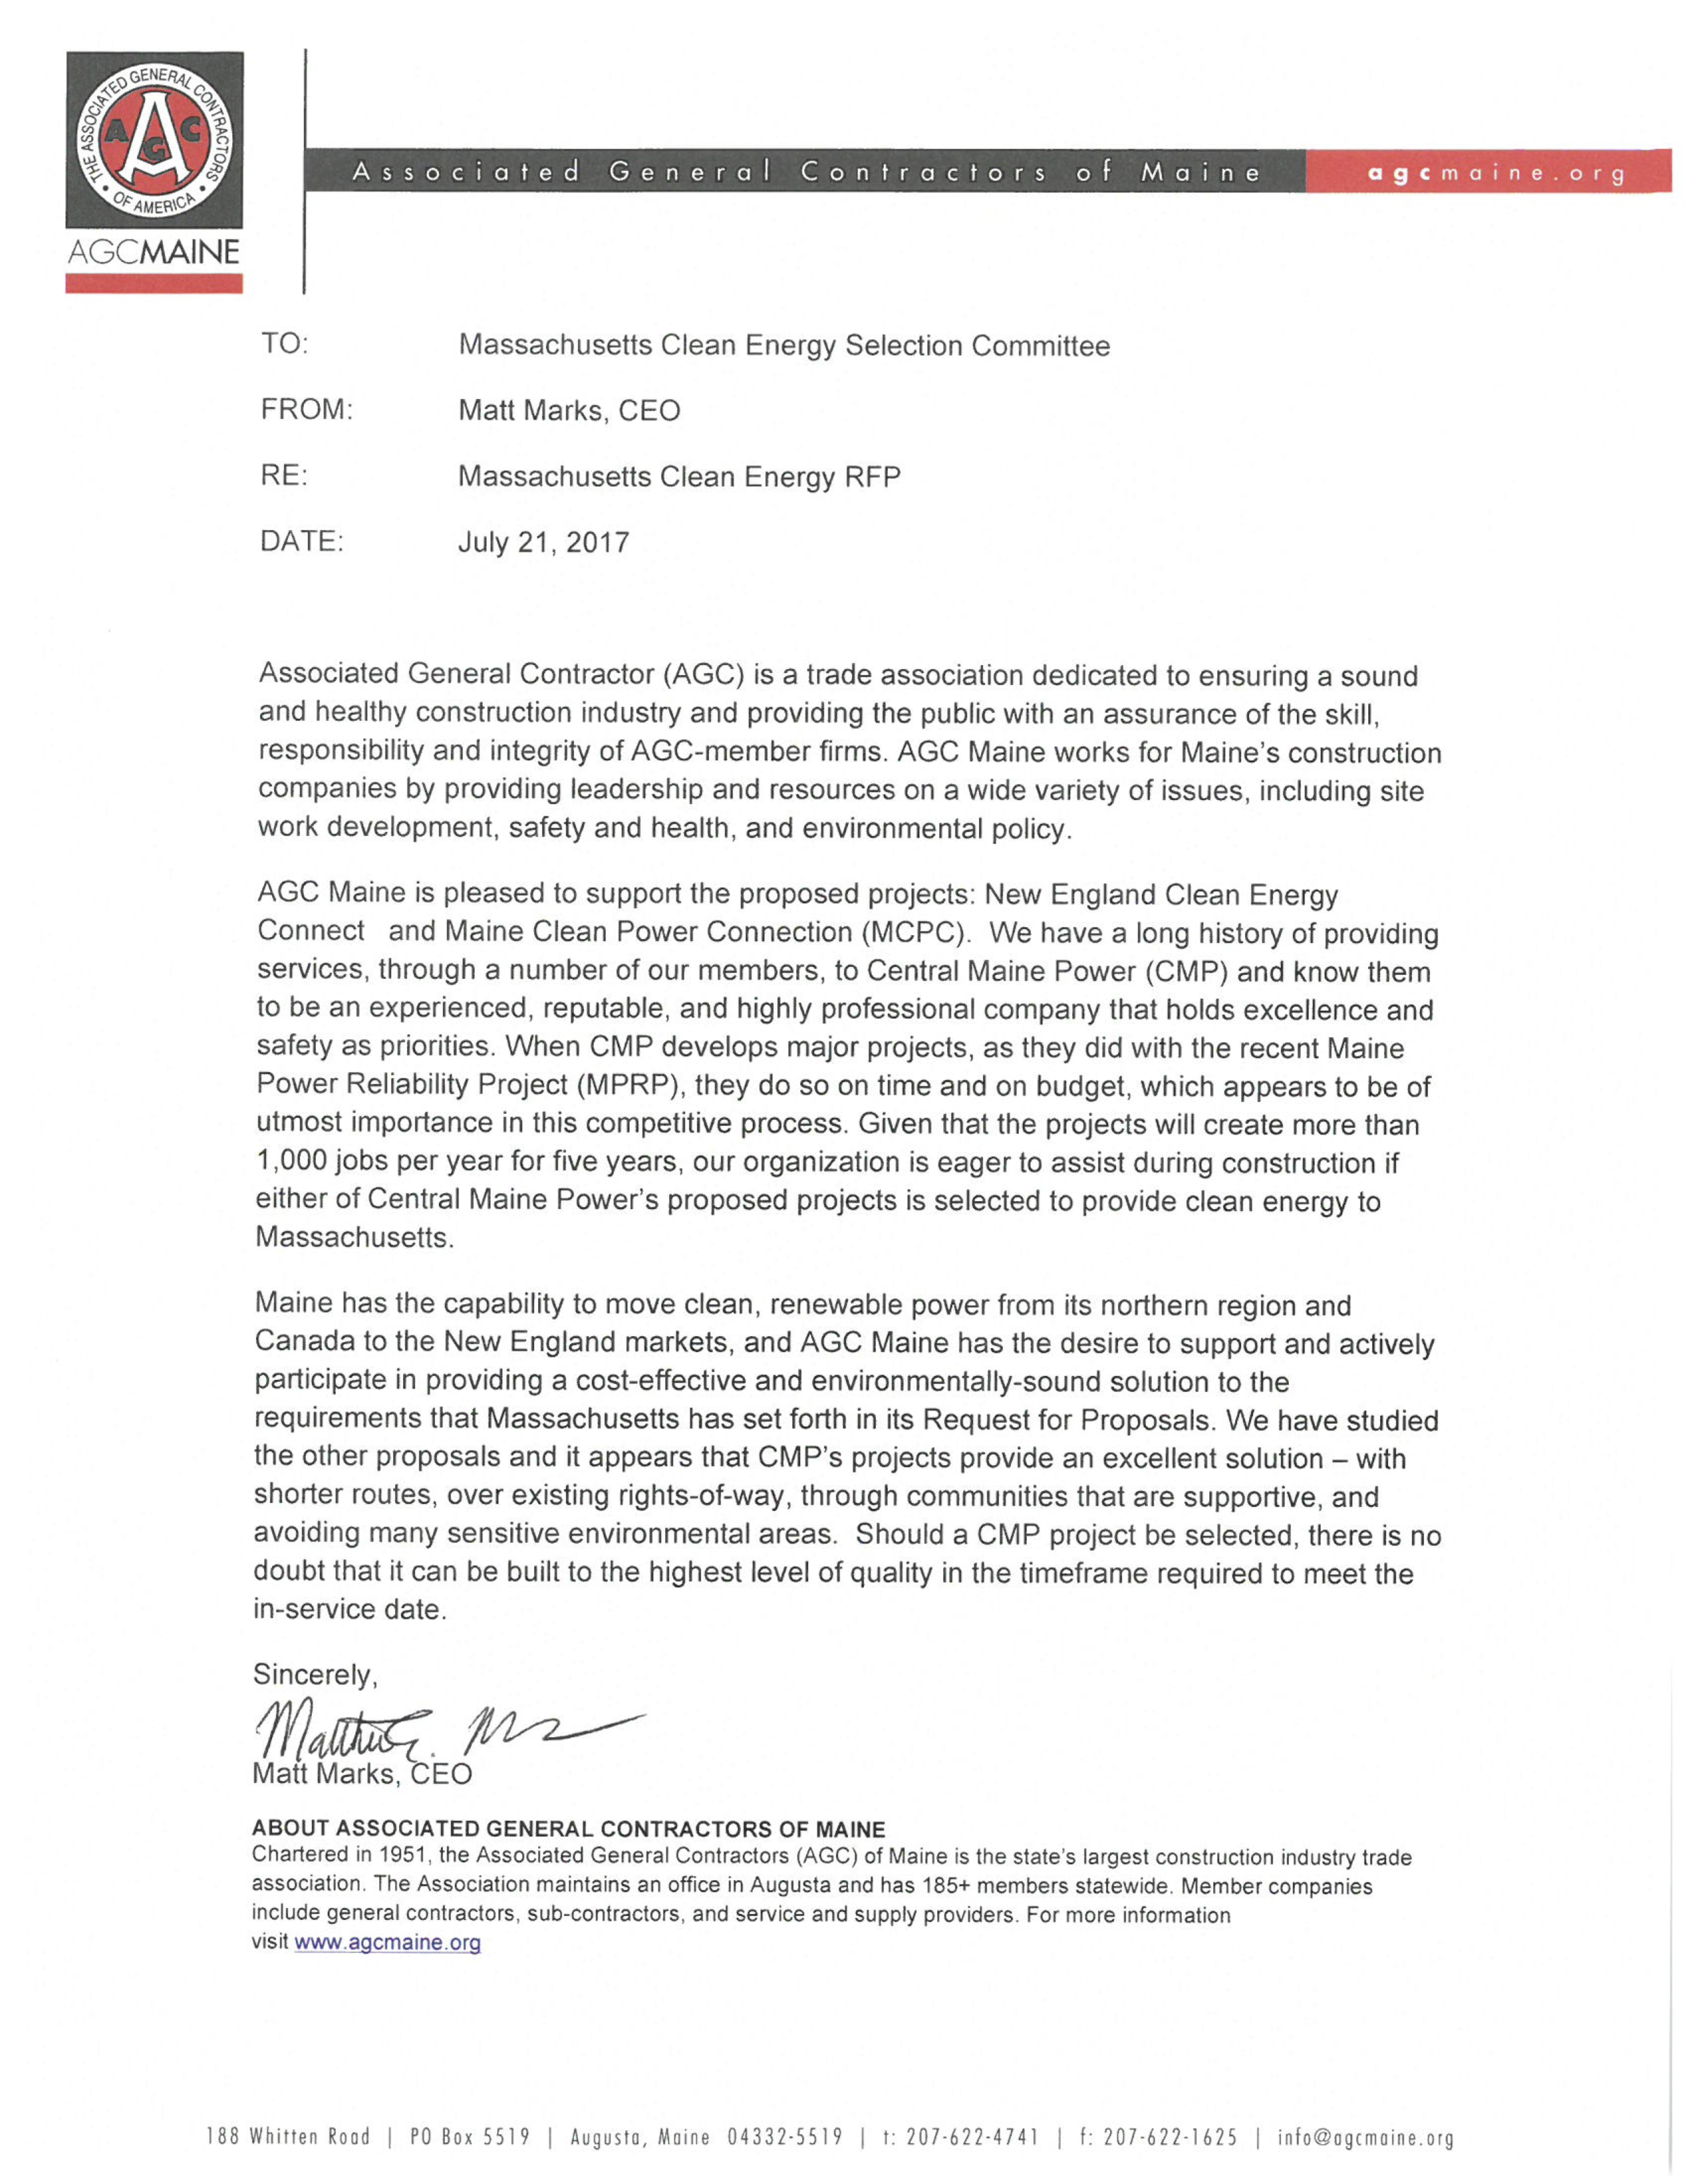 AGC Letter #2.png